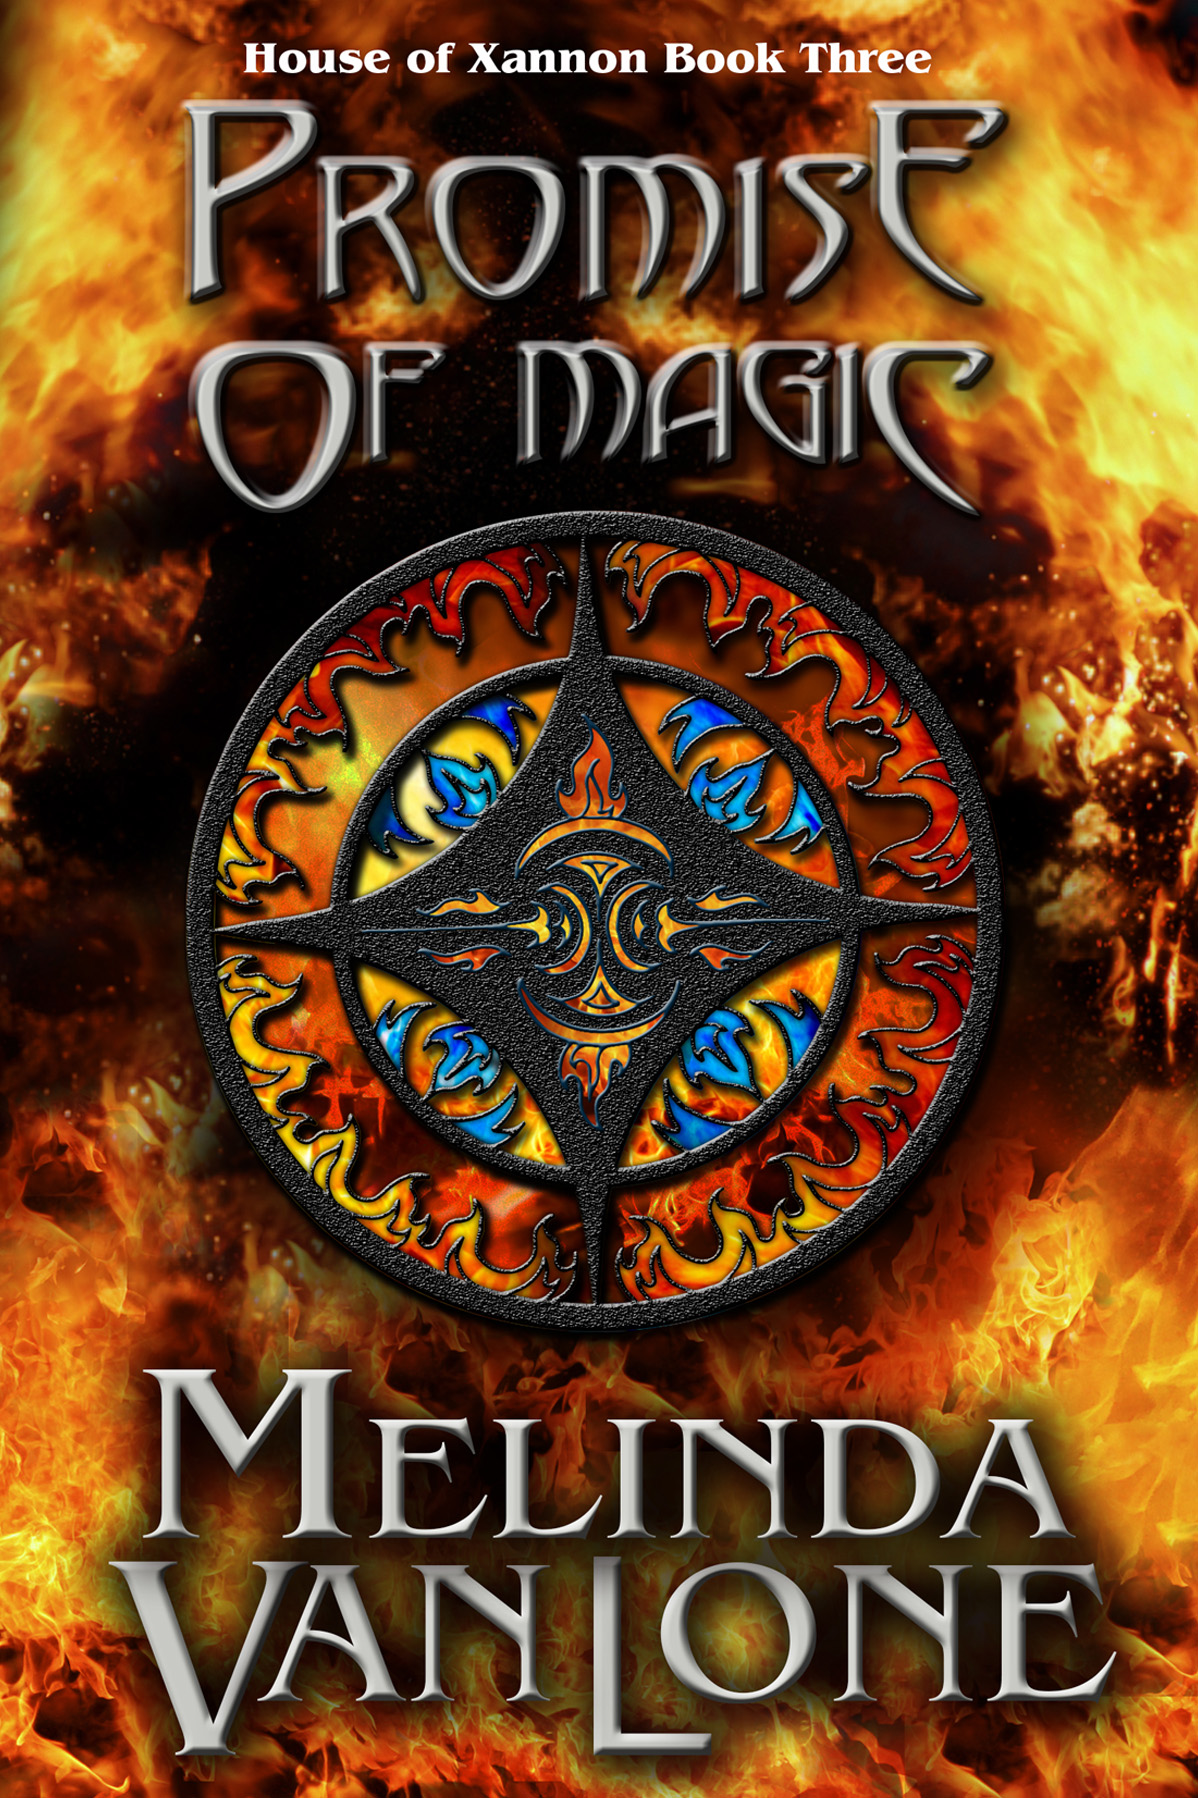 Promise of Magic by Melinda Van Lone, cover by Book Cover Corner